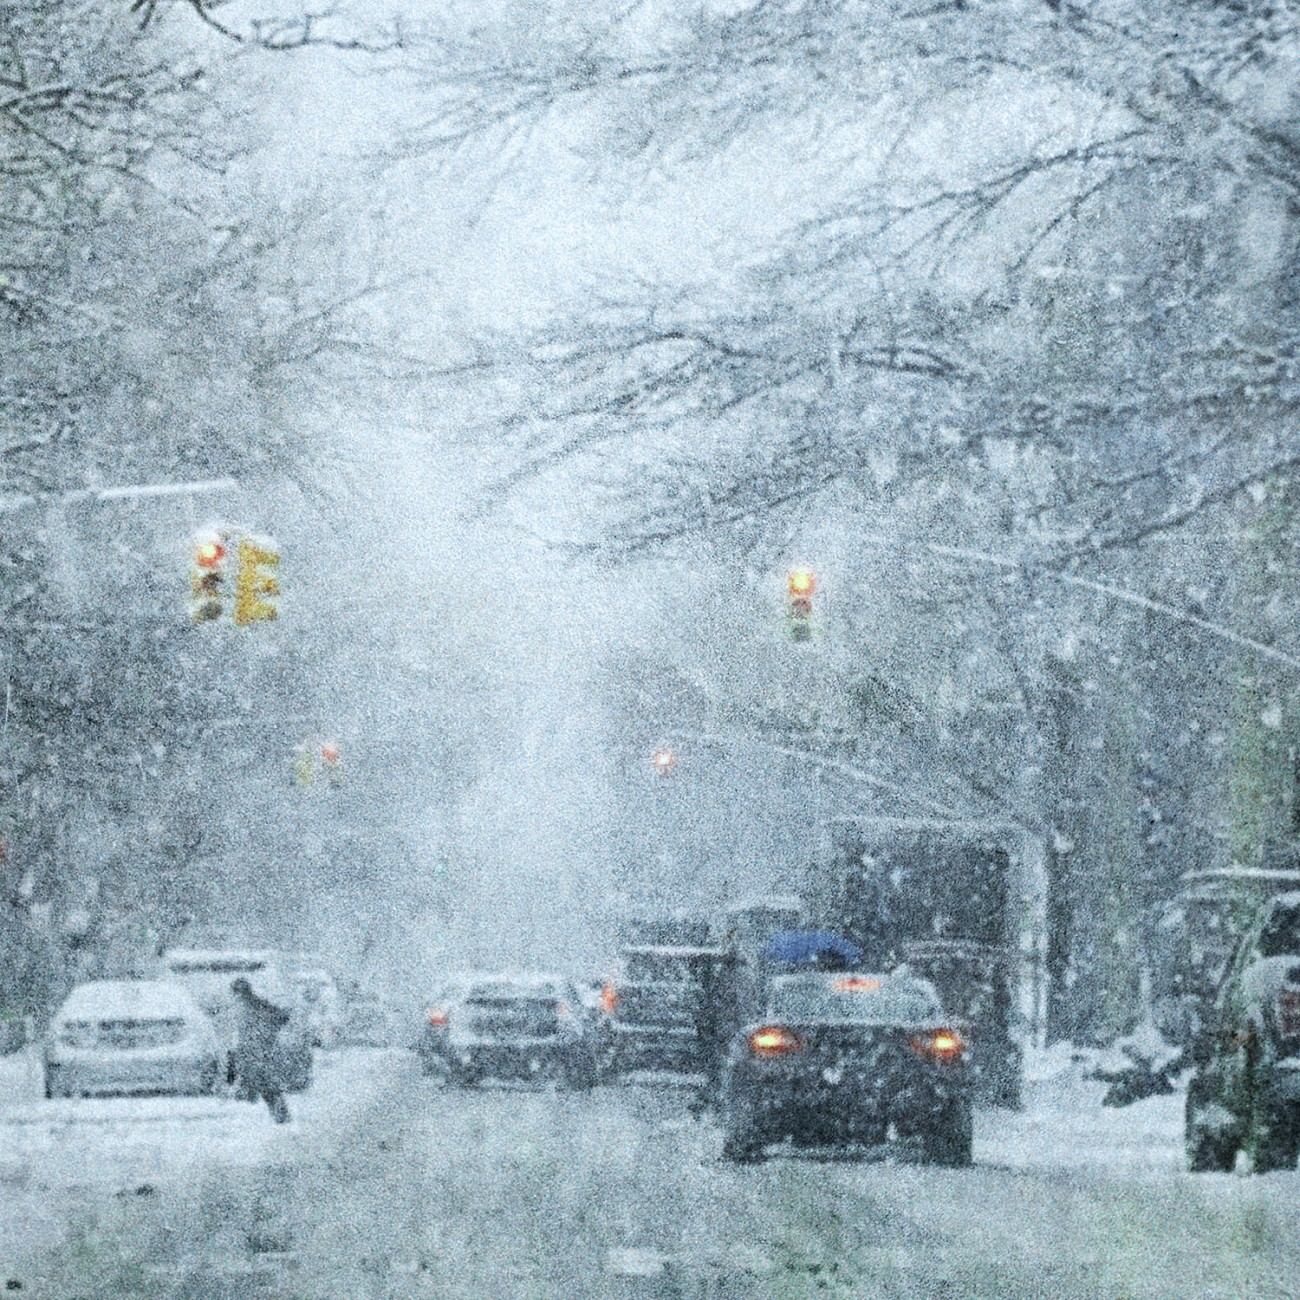 Snowy day Greenwich Village, NY, 2015